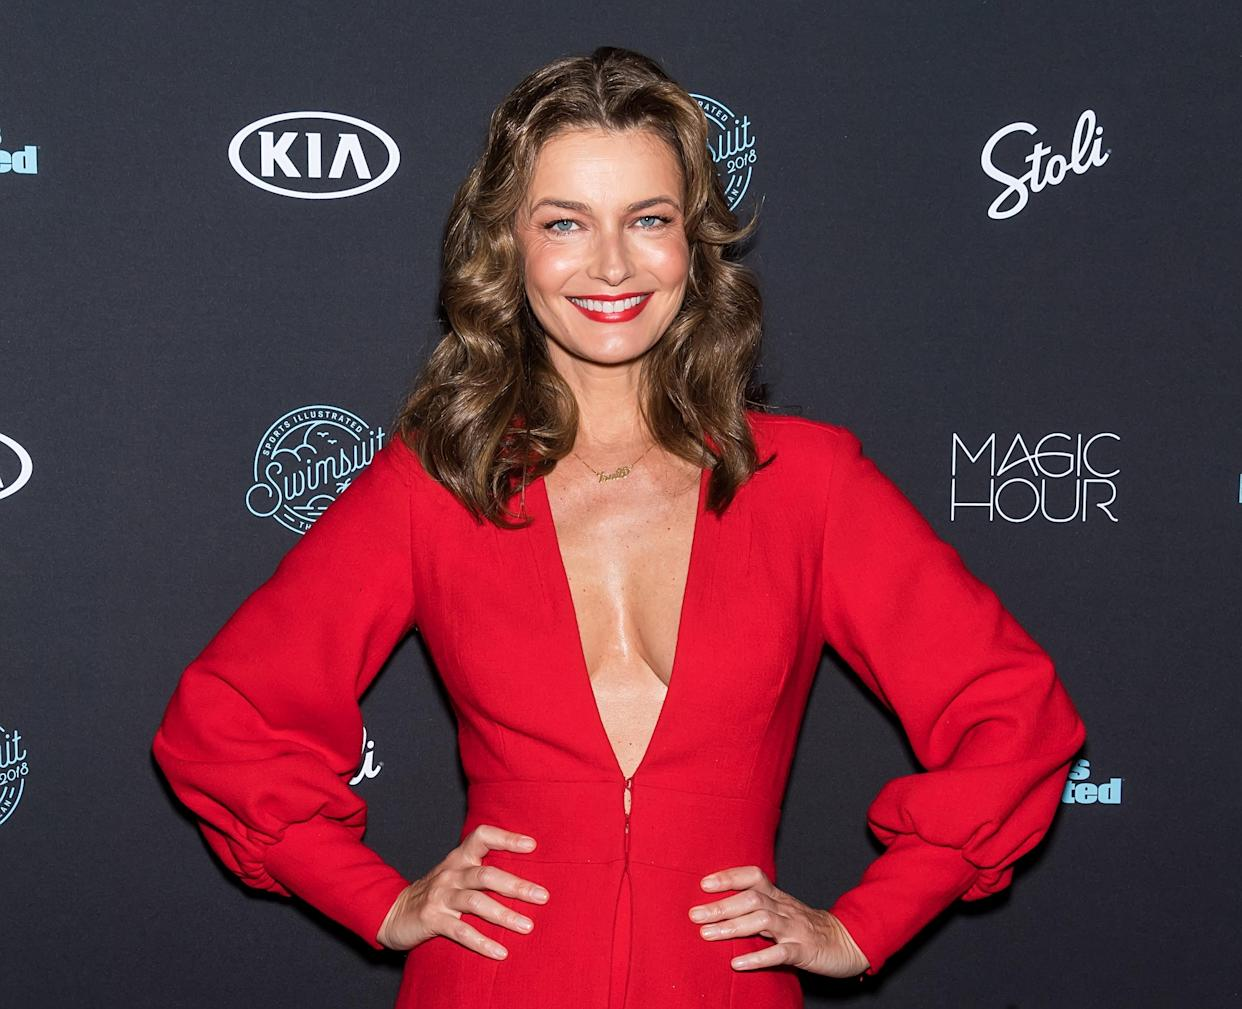 NEW YORK, NY - FEBRUARY 14:  Model Paulina Porizkova attends the 2018 Sports Illustrated Swimsuit Issue Launch Celebration at Magic Hour at Moxy Times Square on February 14, 2018 in New York City.  (Photo by Gilbert Carrasquillo/FilmMagic)